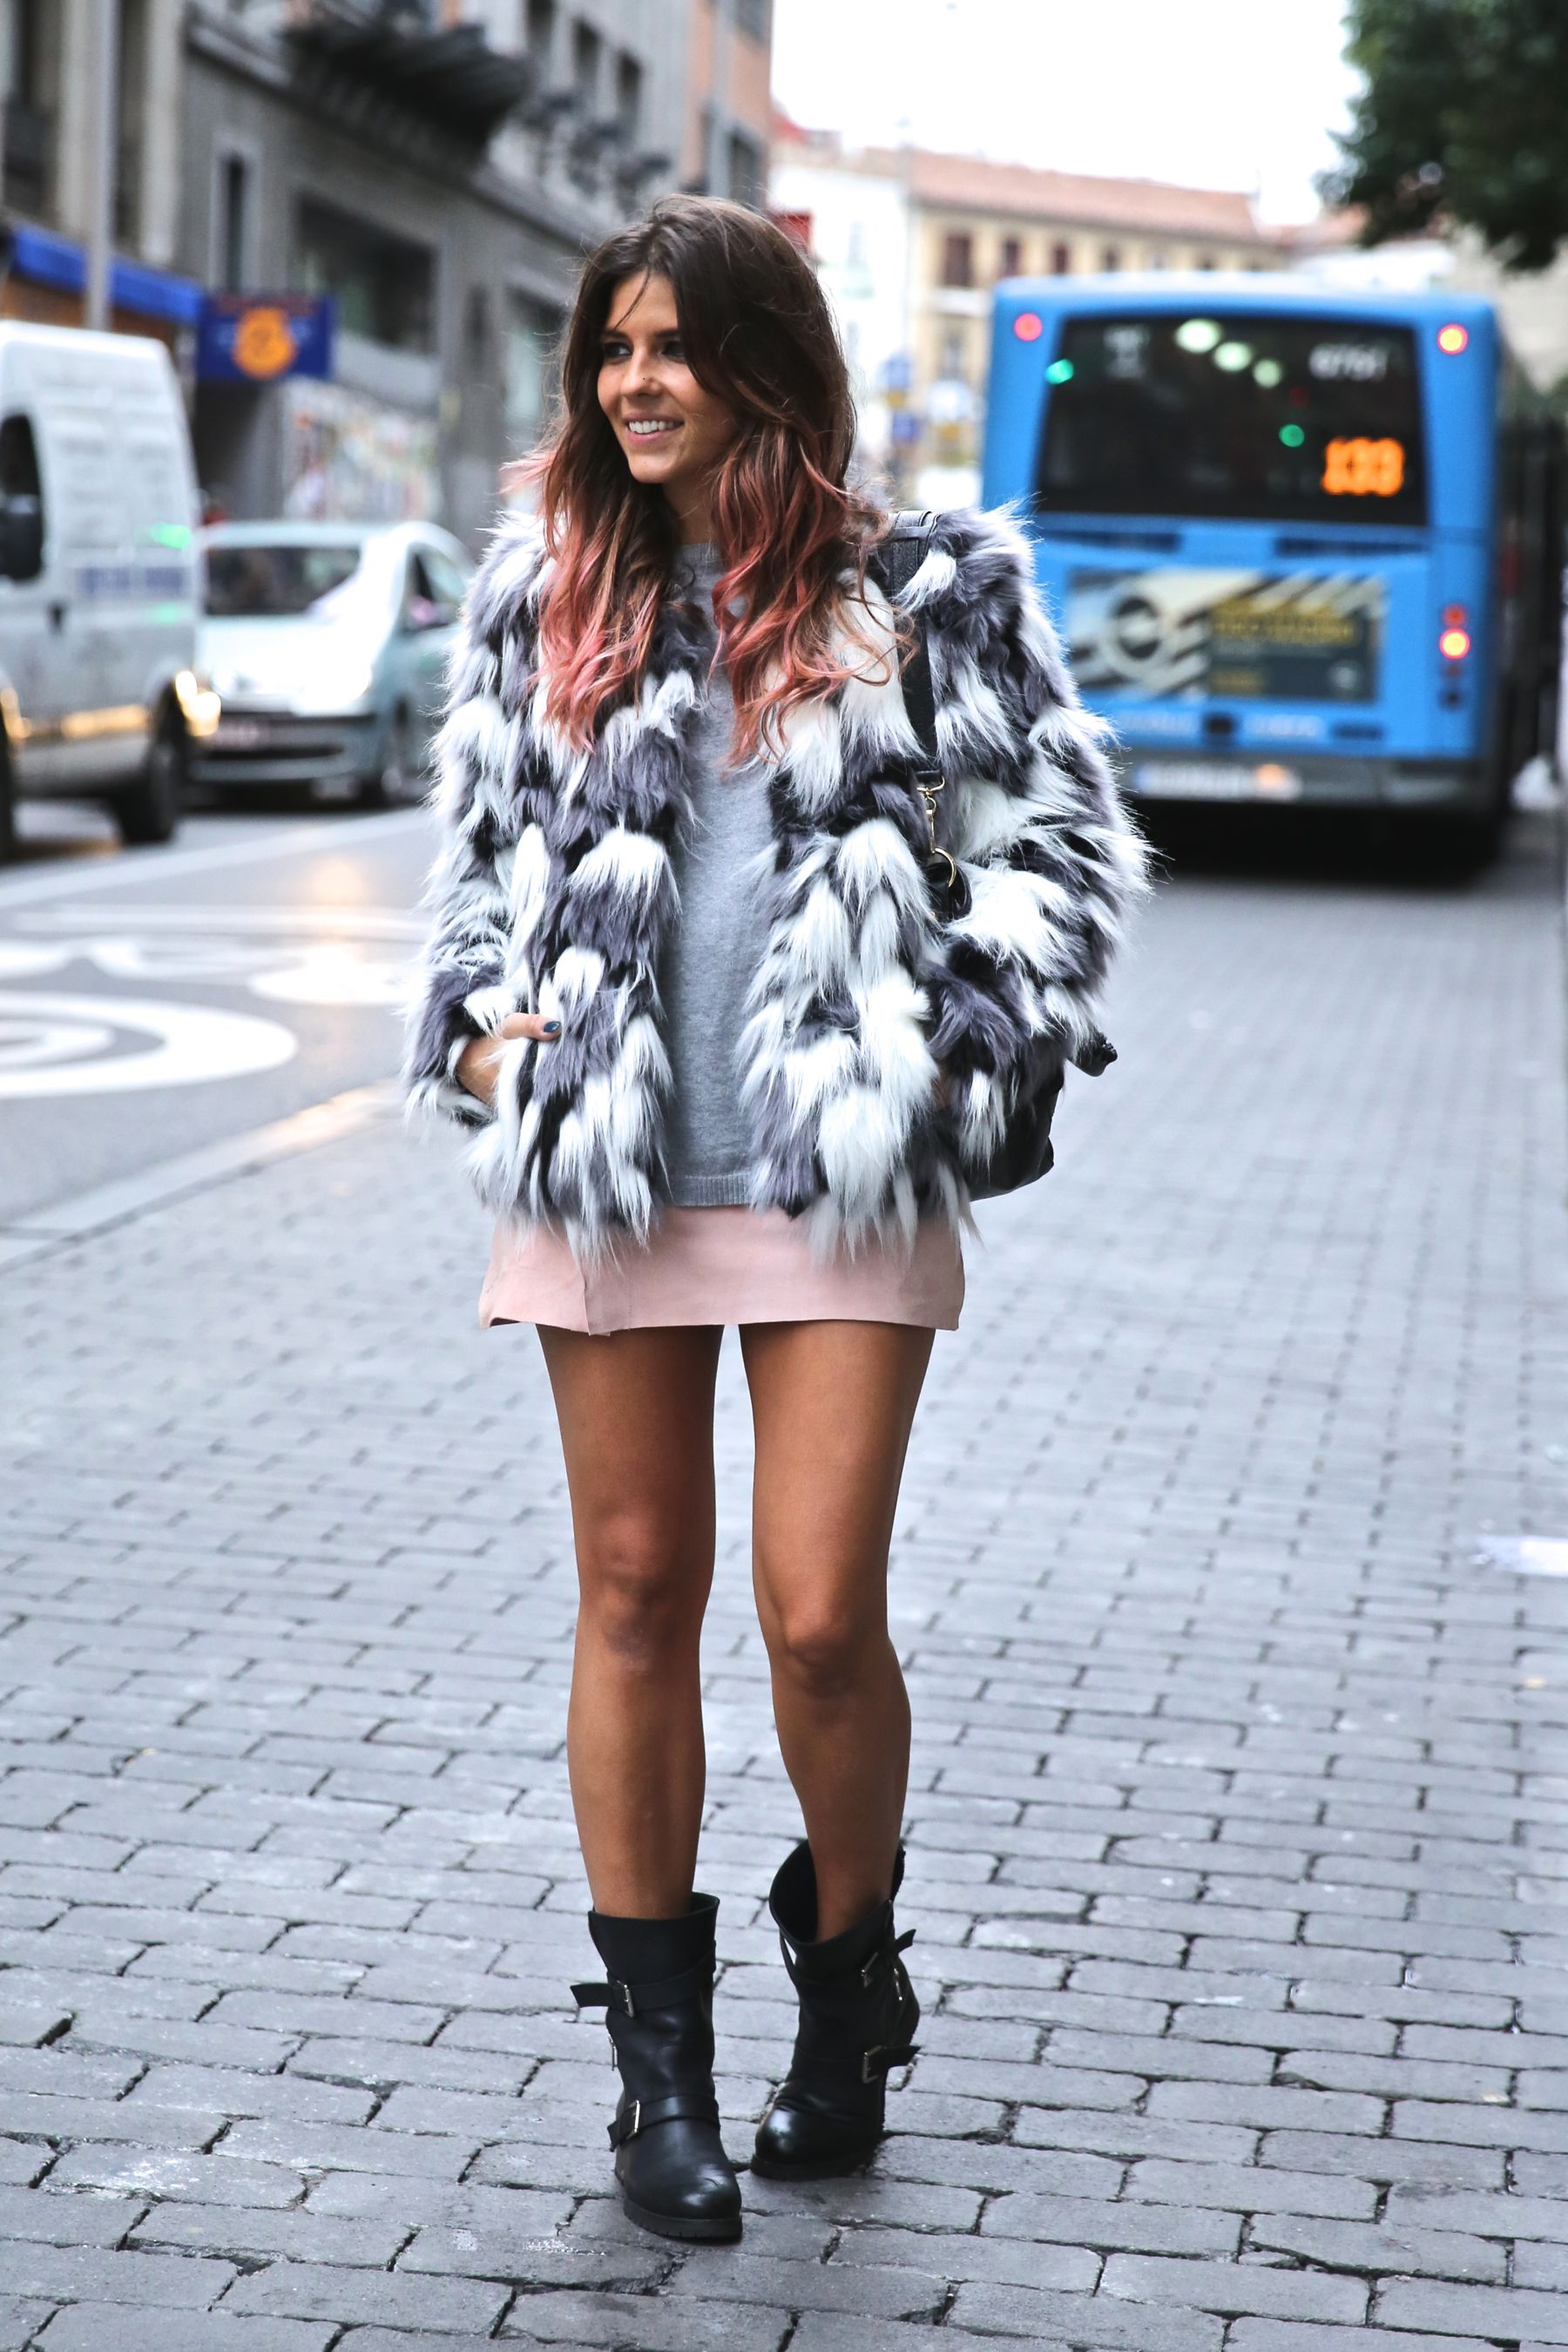 trendy_taste-look-outfit-street_style-ootd-blog-blogger-fashion_spain-moda_españa-falda_rosa-pink_skirt-abrigo_pelo-leather-piel-biker_boots-botas_moteras-rock-ghd-aecc-16